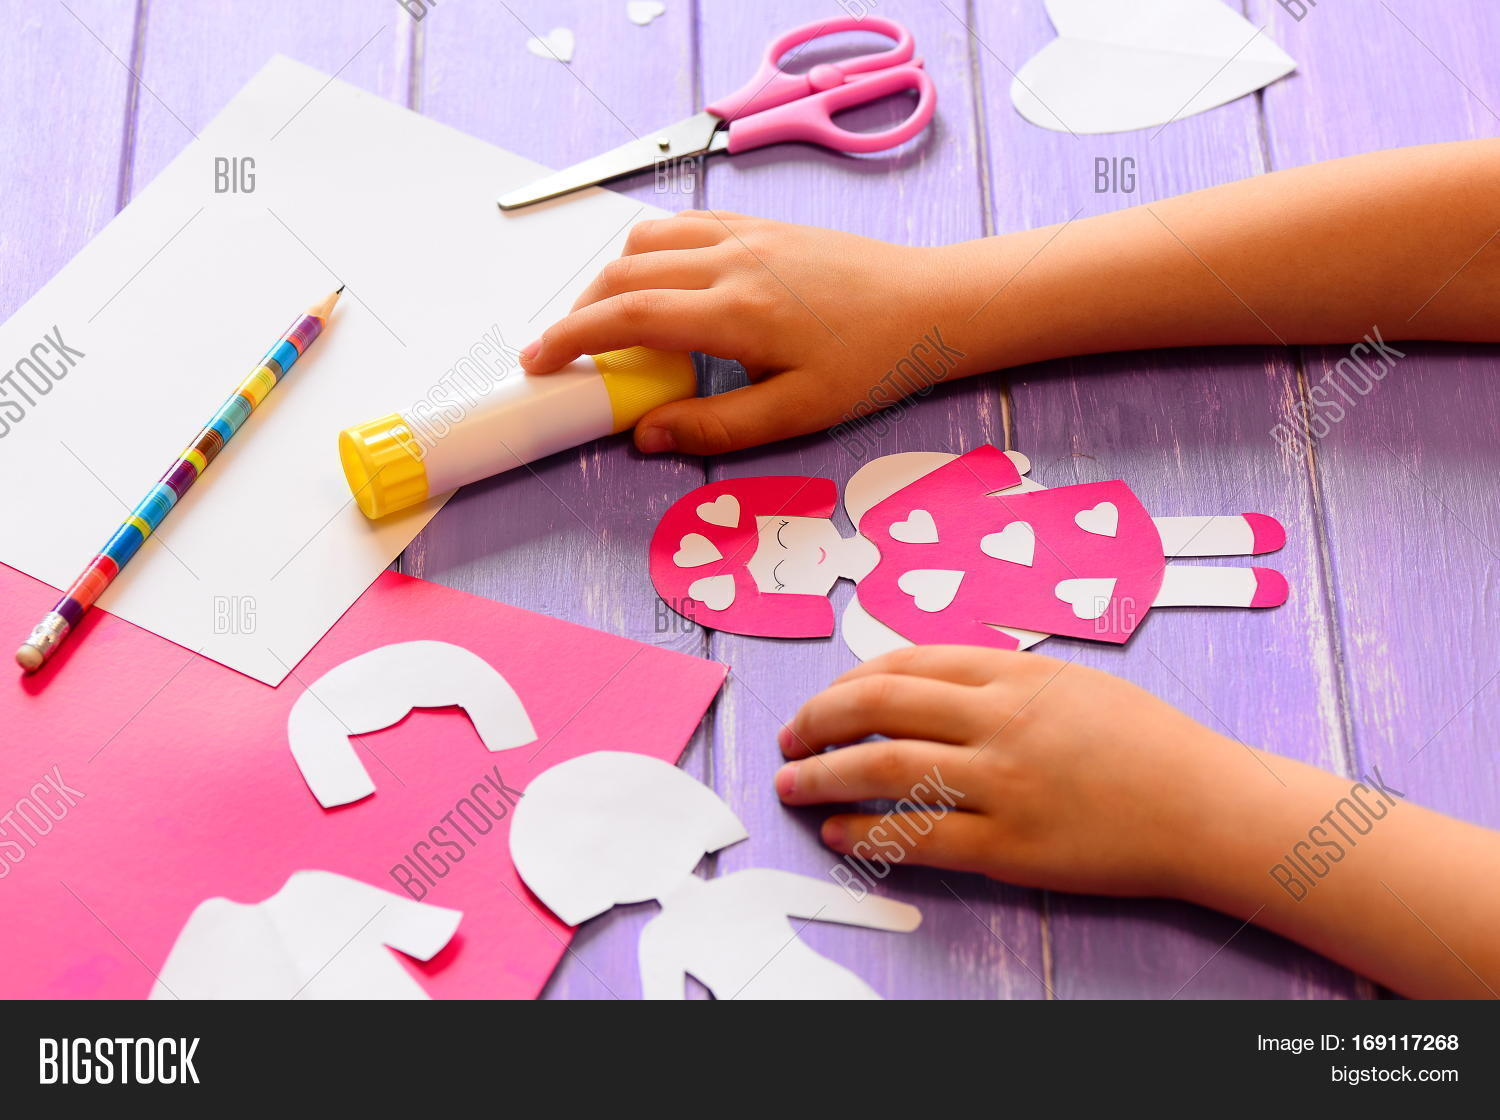 Small Child Made Angel Image Photo Free Trial Bigstock